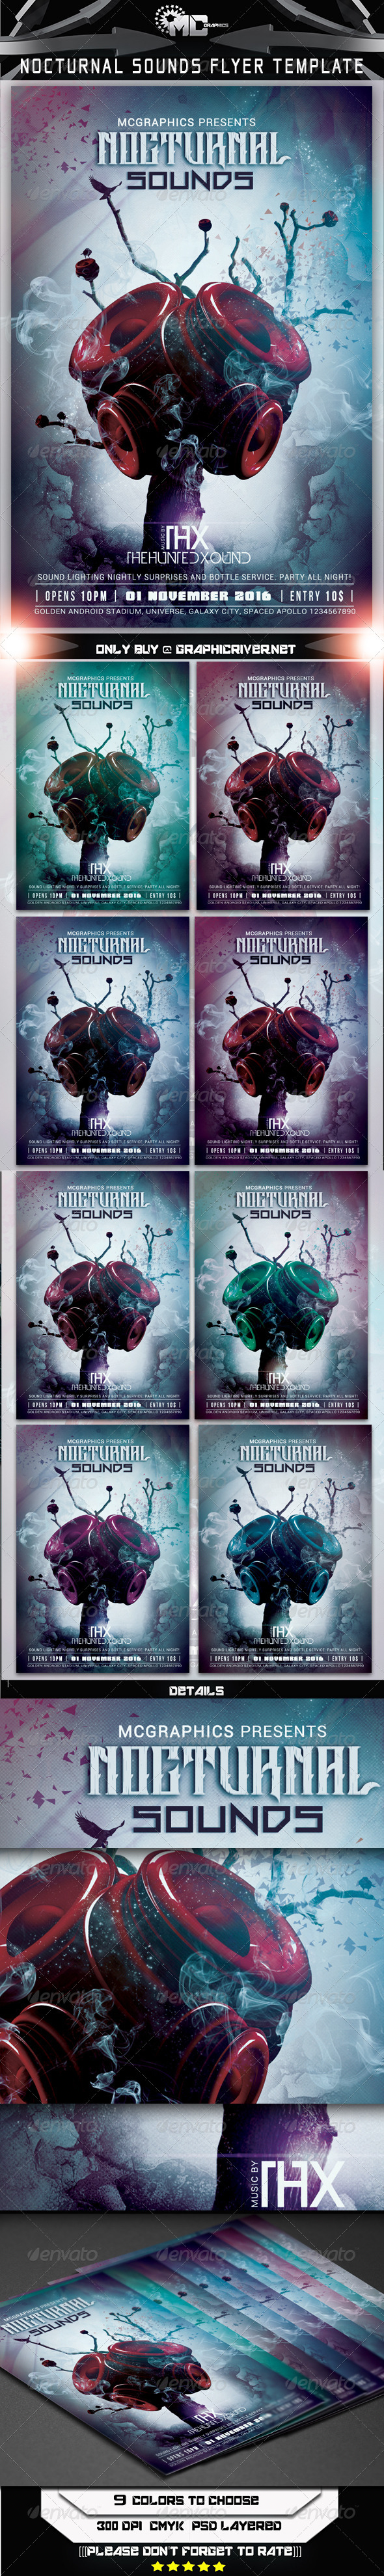 nocturnal_sounds_flyer_template